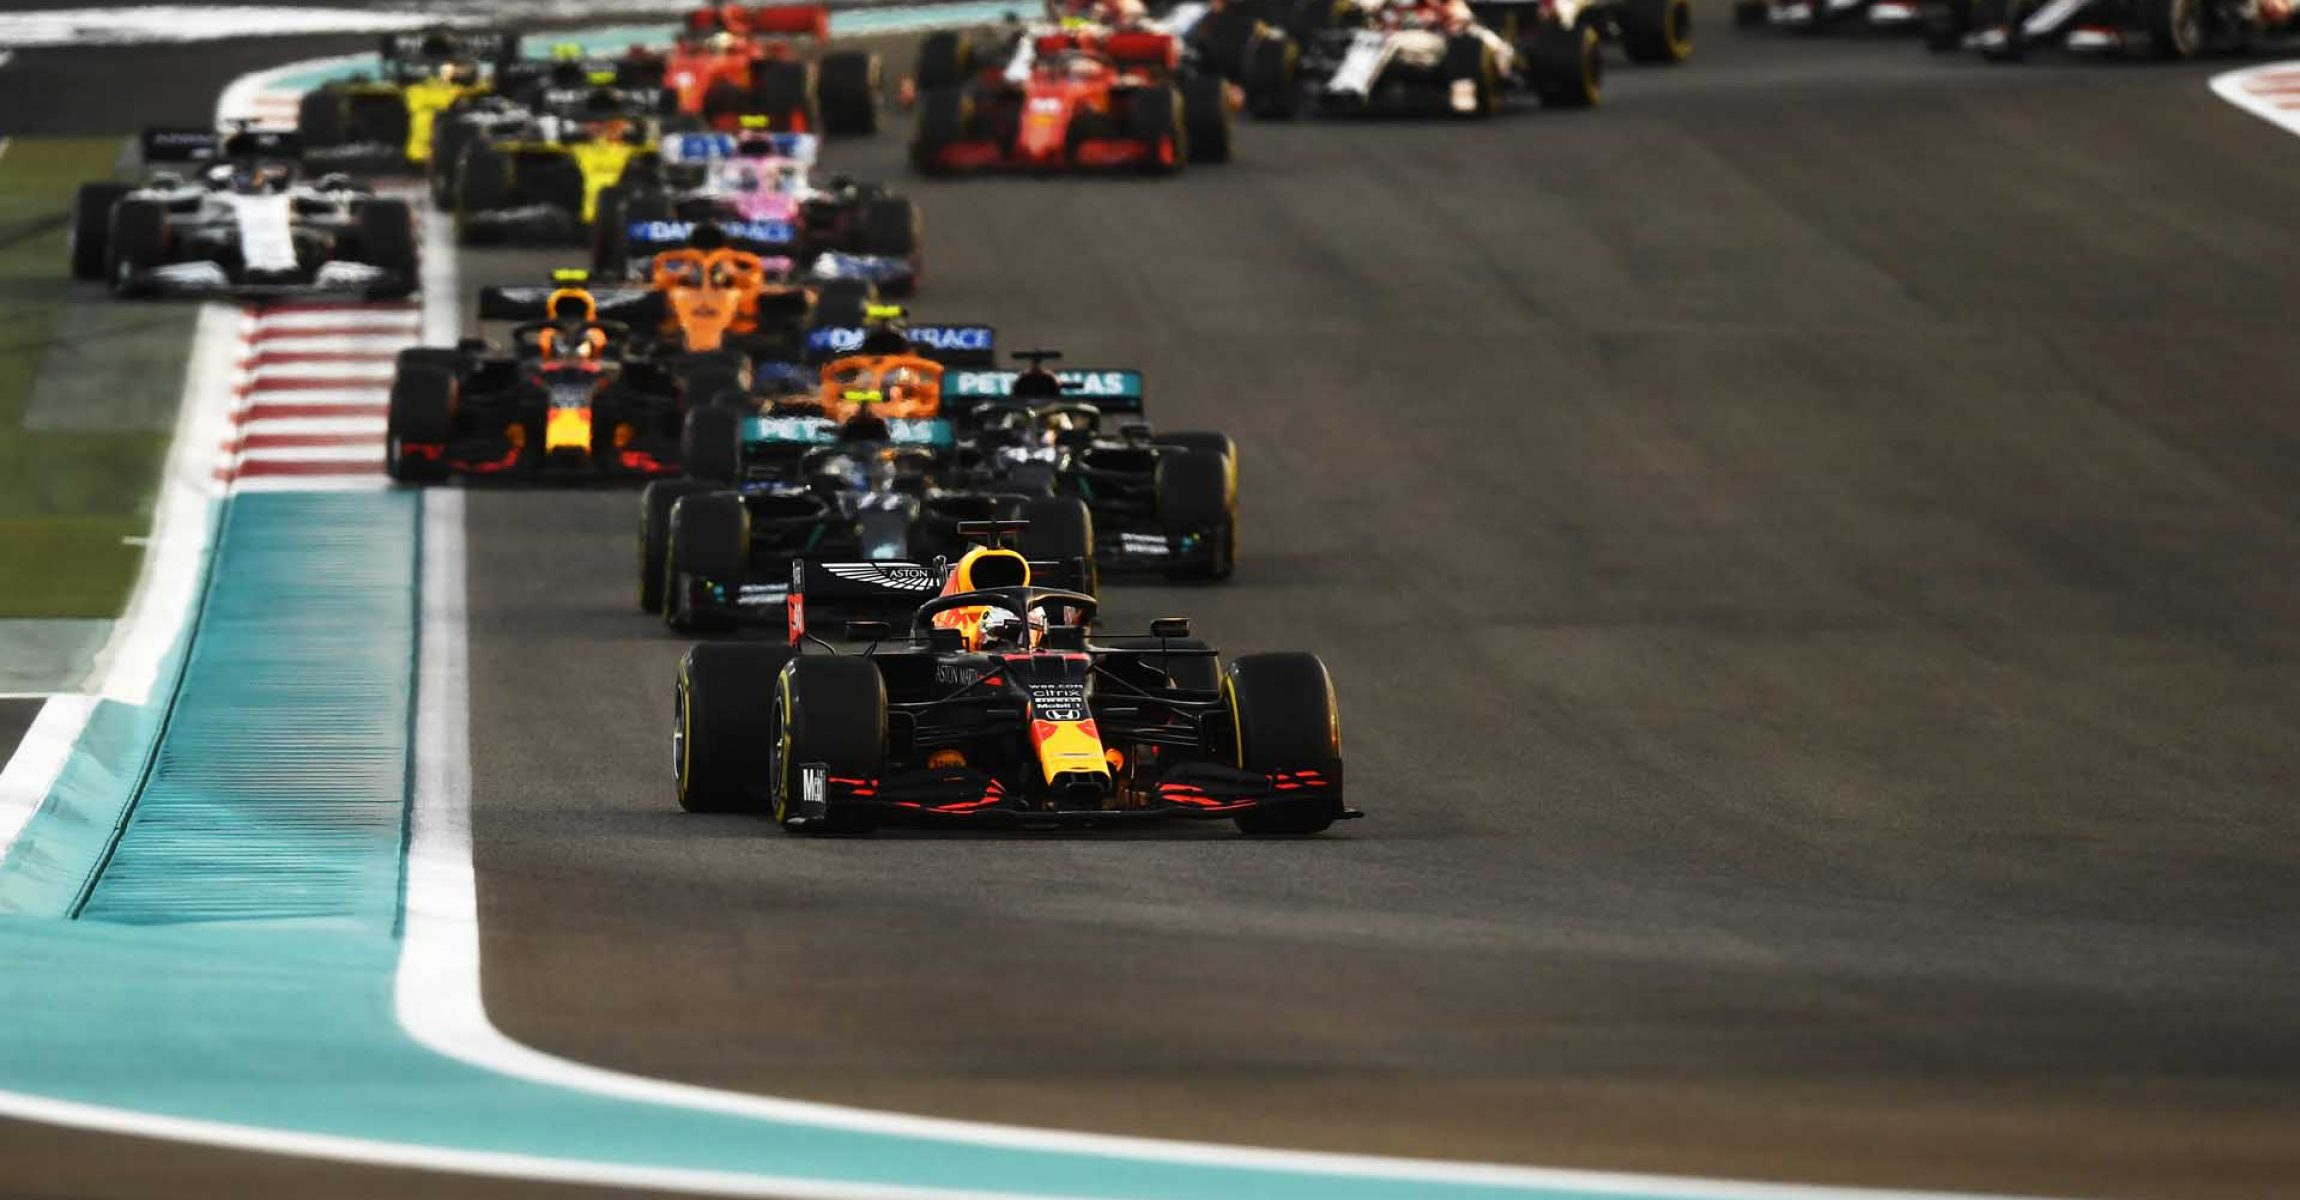 ABU DHABI, UNITED ARAB EMIRATES - DECEMBER 13: Max Verstappen of the Netherlands driving the (33) Aston Martin Red Bull Racing RB16 leads the field at the start during the F1 Grand Prix of Abu Dhabi at Yas Marina Circuit on December 13, 2020 in Abu Dhabi, United Arab Emirates. (Photo by Rudy Carezzevoli/Getty Images)